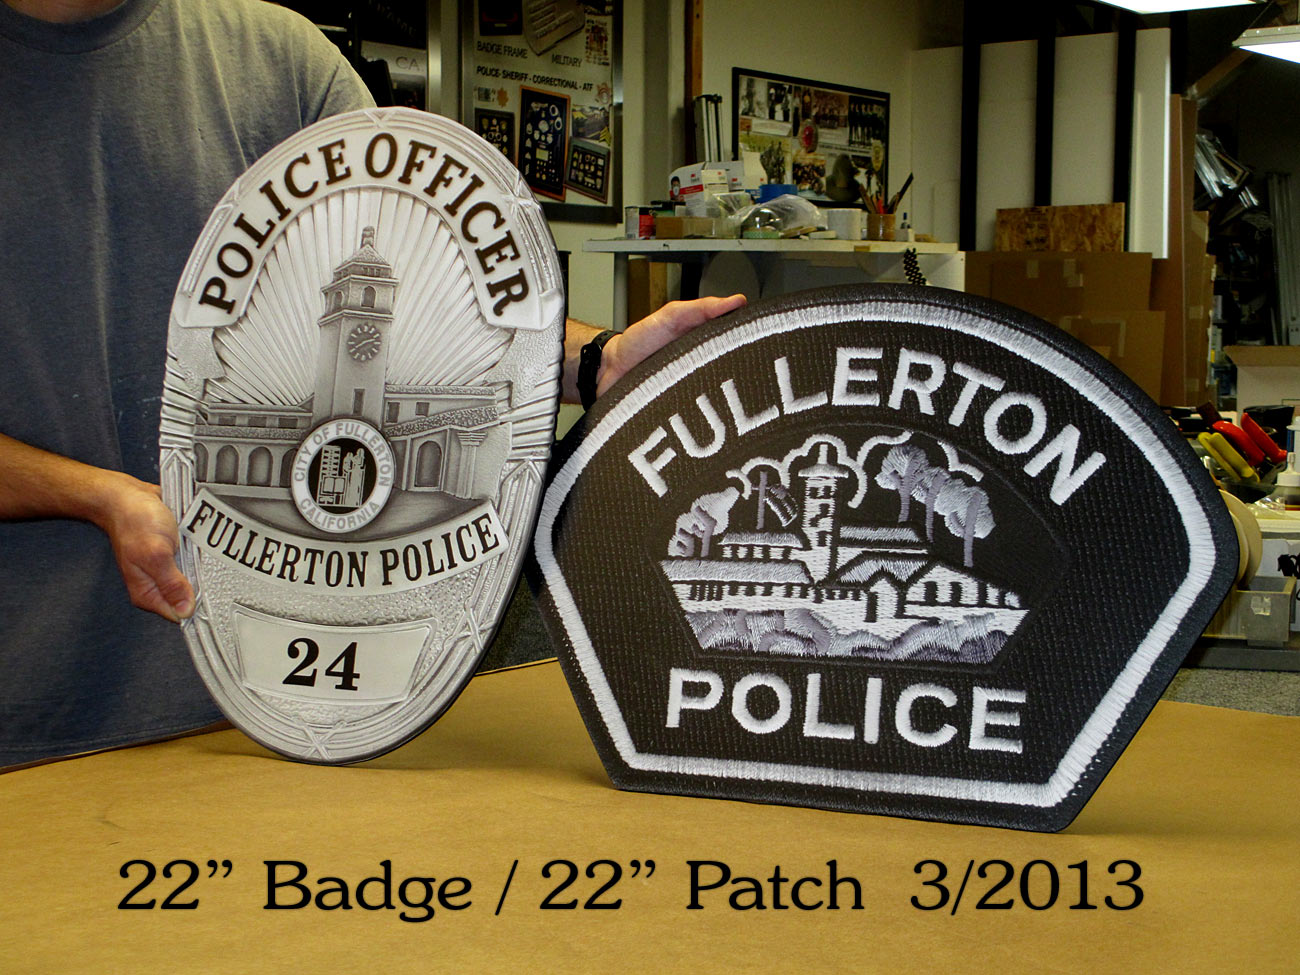 Fullerton Badge           & Patch